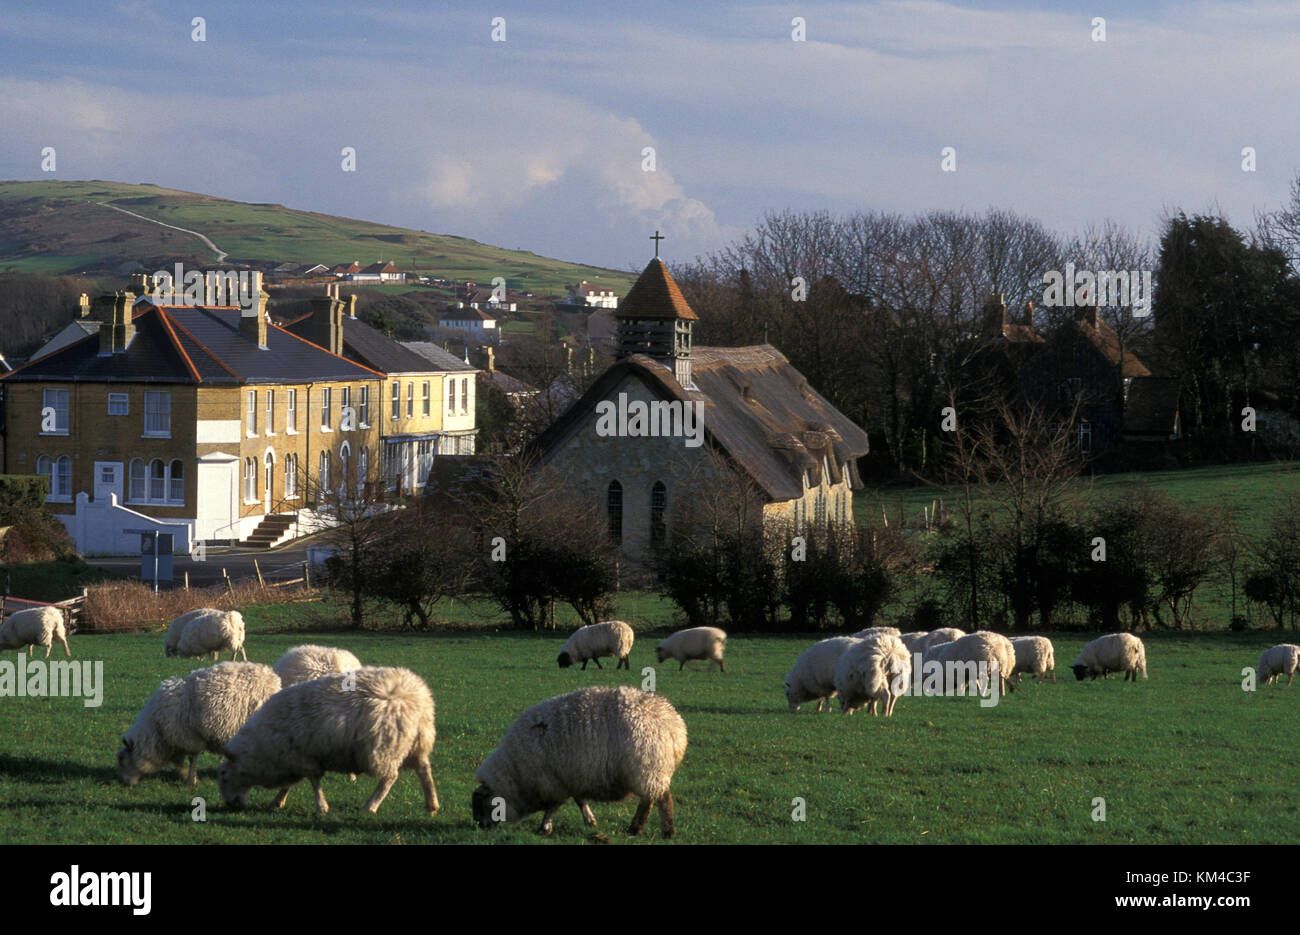 sheep grazing in front of St Agnes Church, Freshwater Bay, Isle of Wight, Hampshire, England - Stock Image